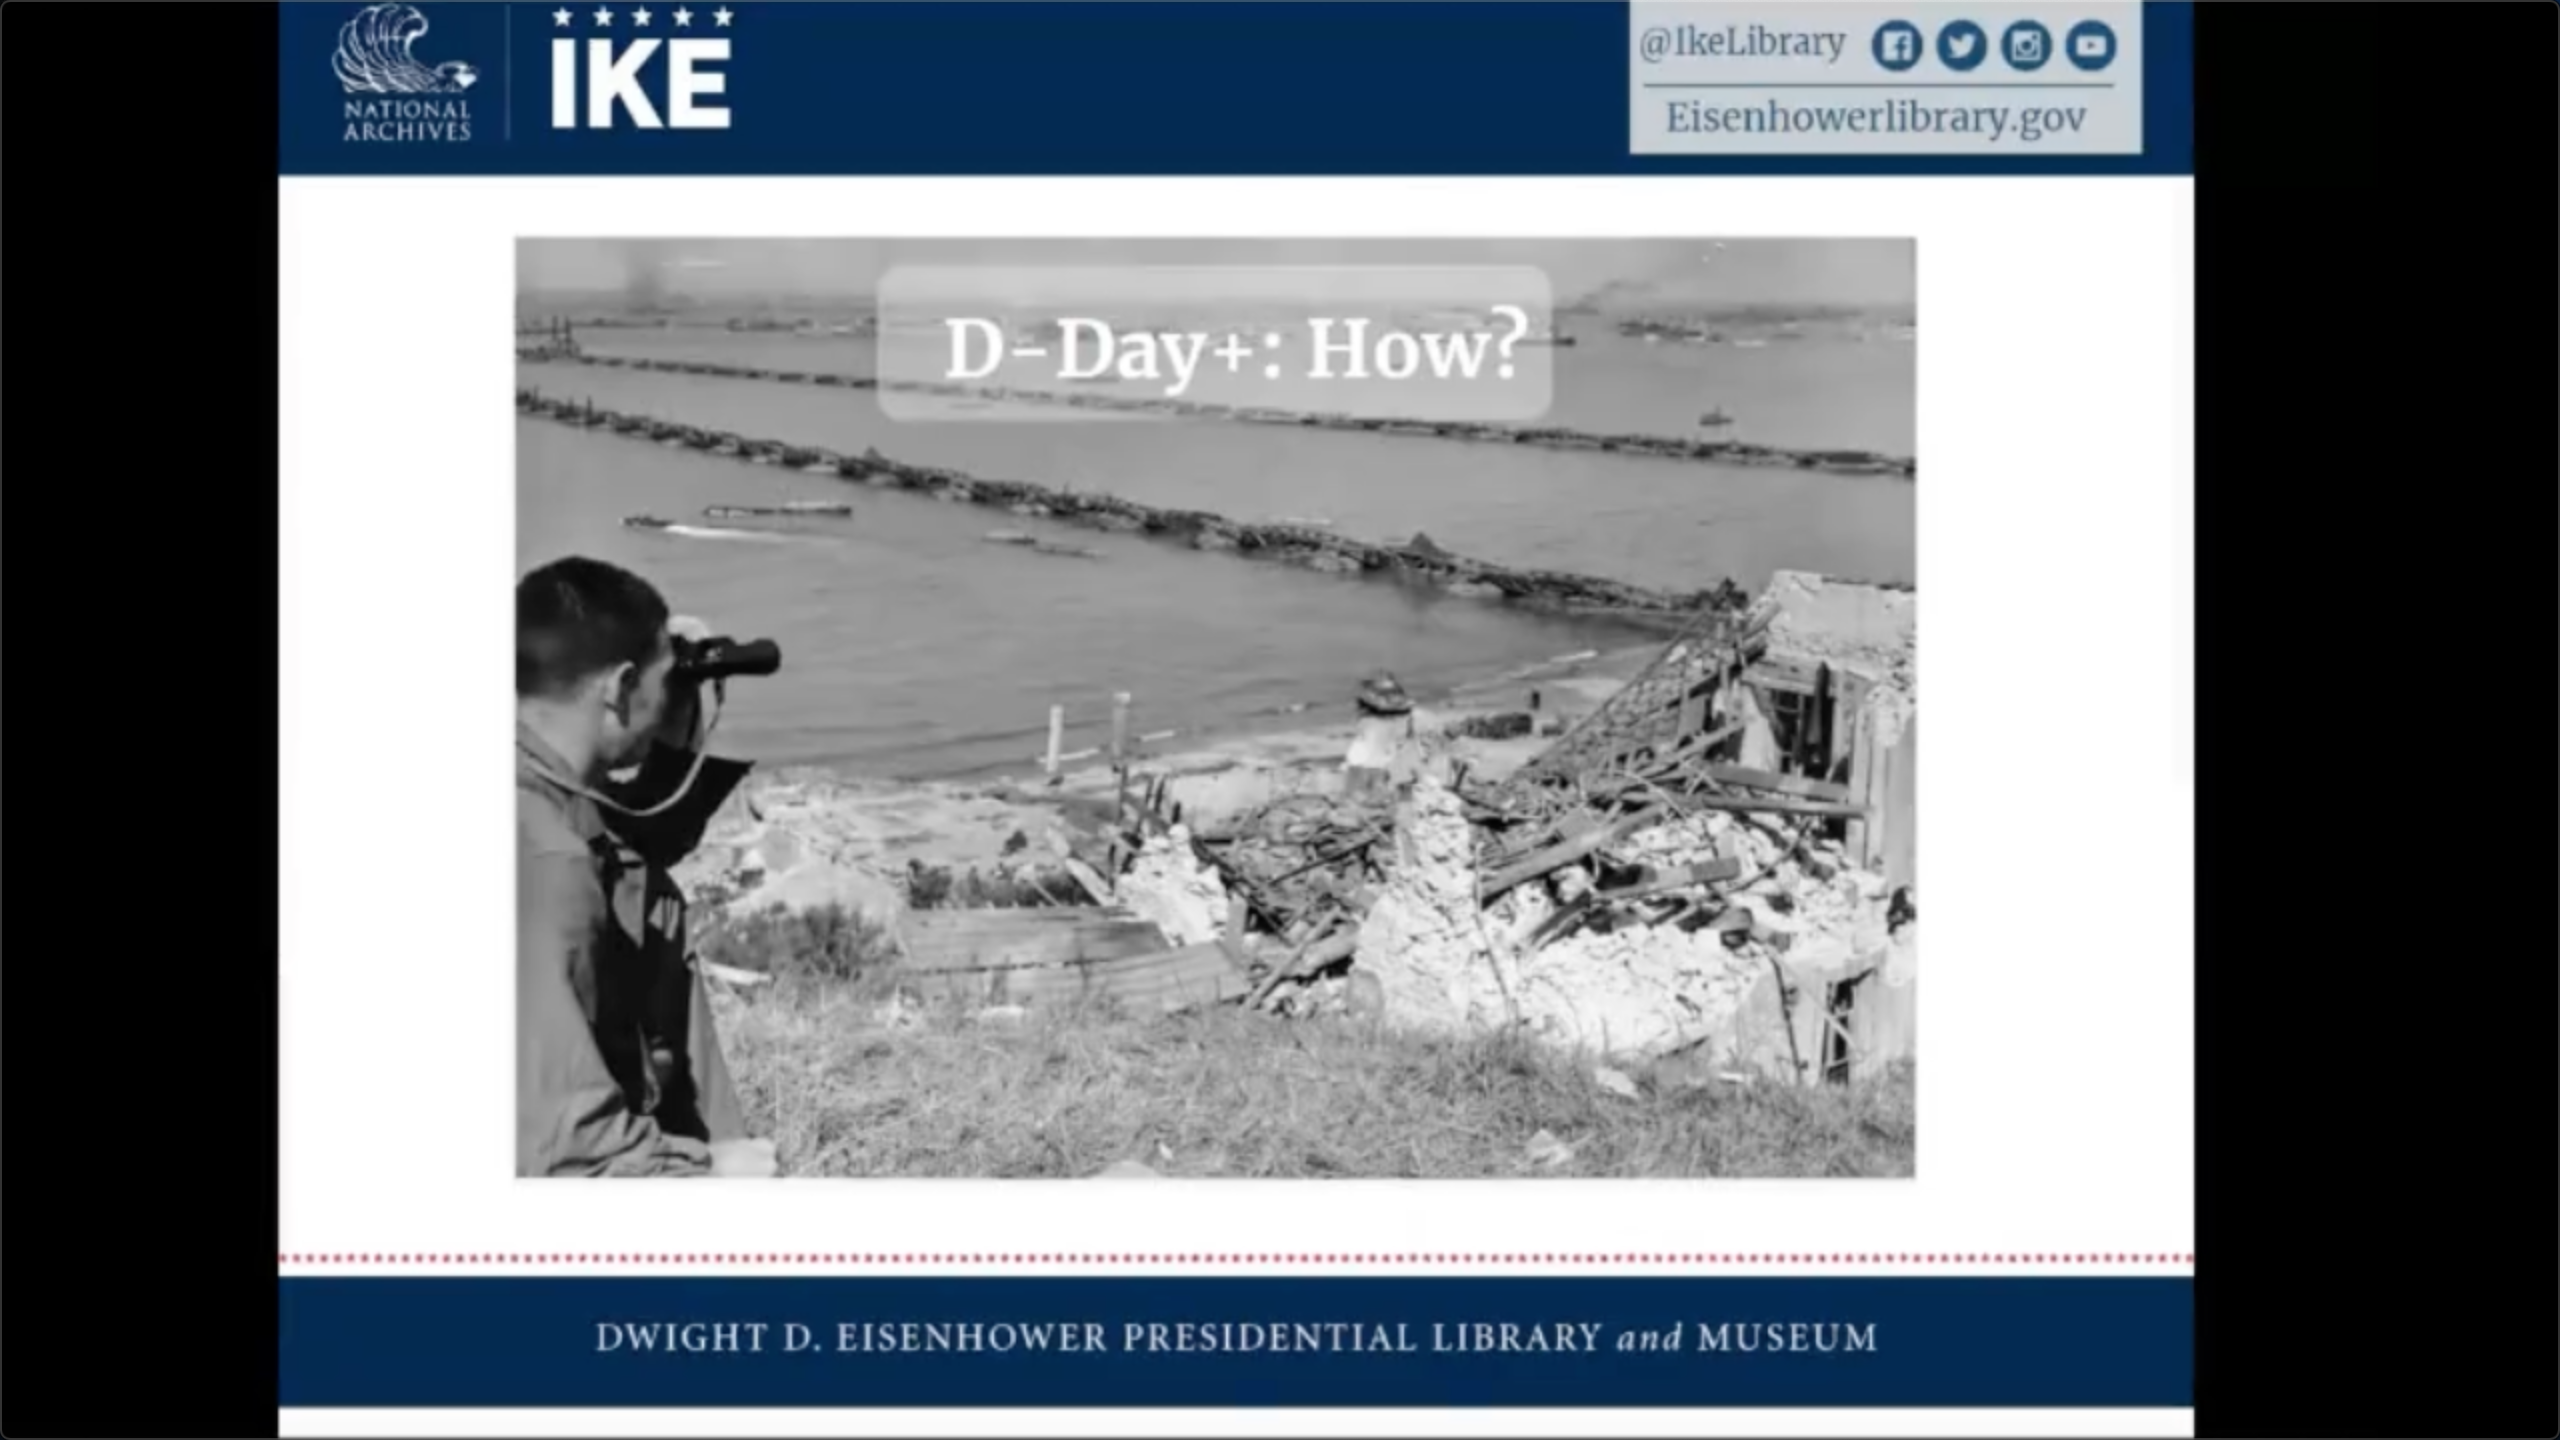 Eisenhower Presidential Library and Museum: D-Day+: How?